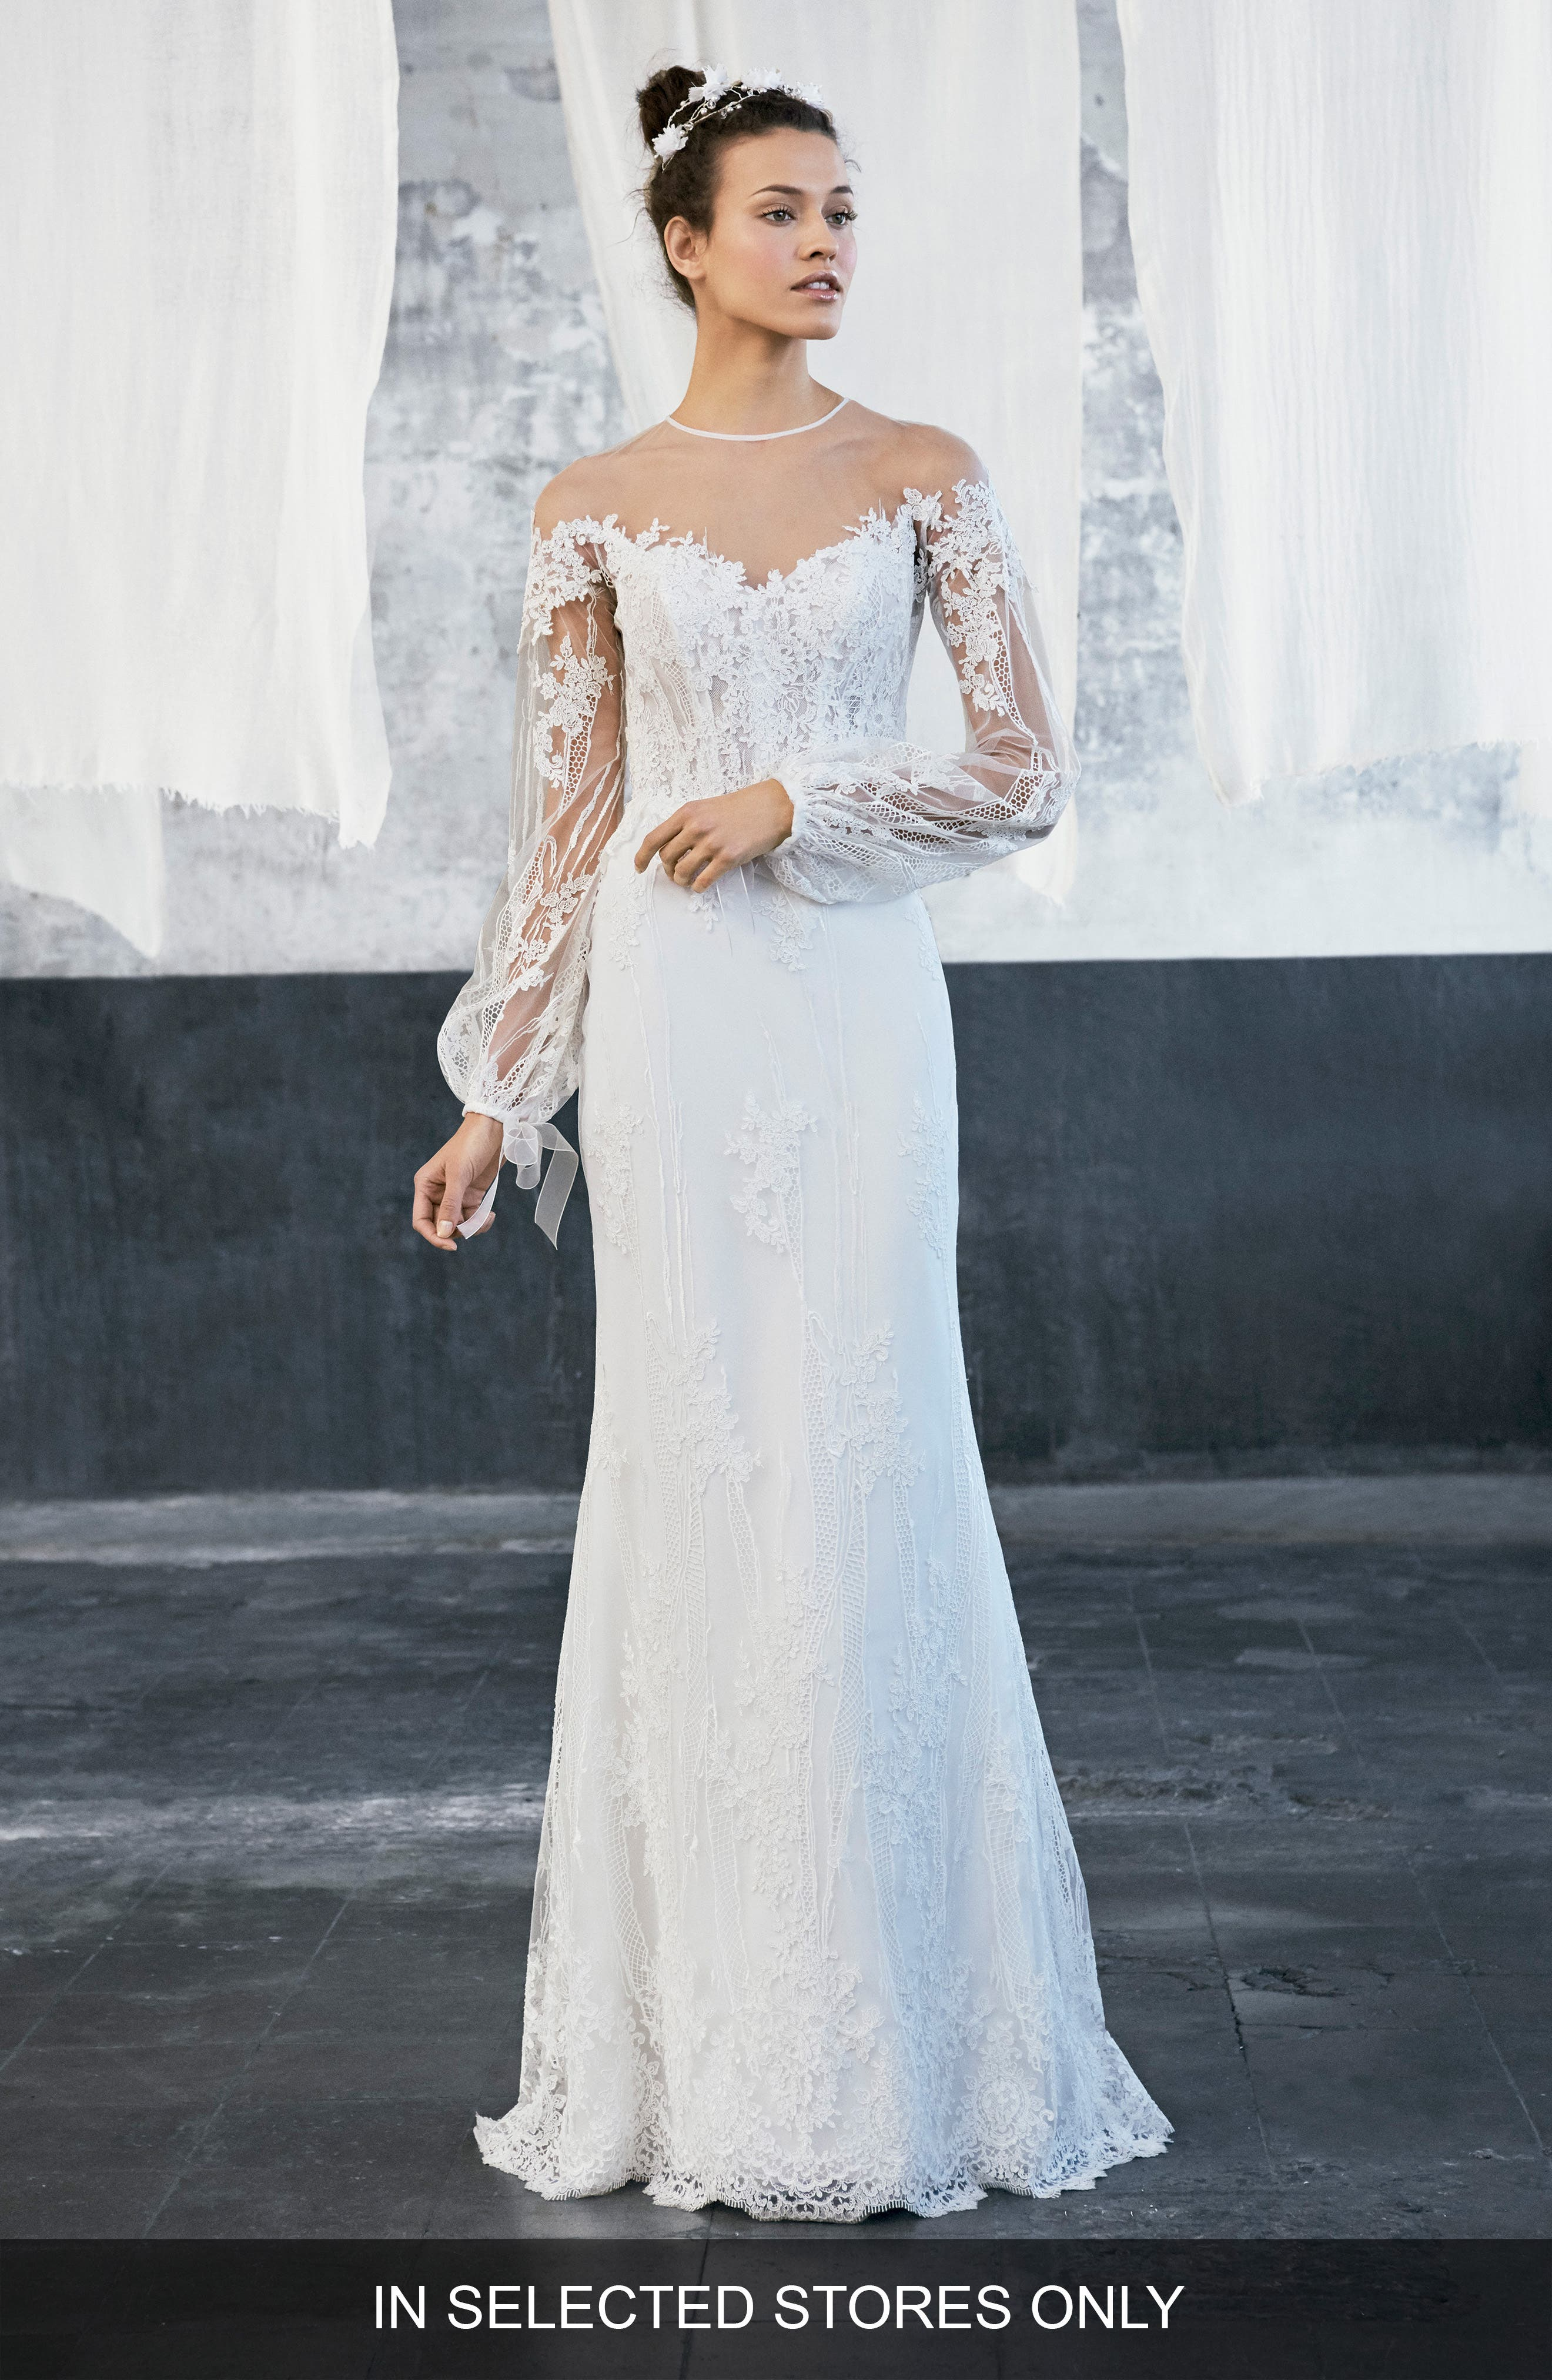 Inmaculada garcía tecate puff sleeve embroidered tulle lace gown